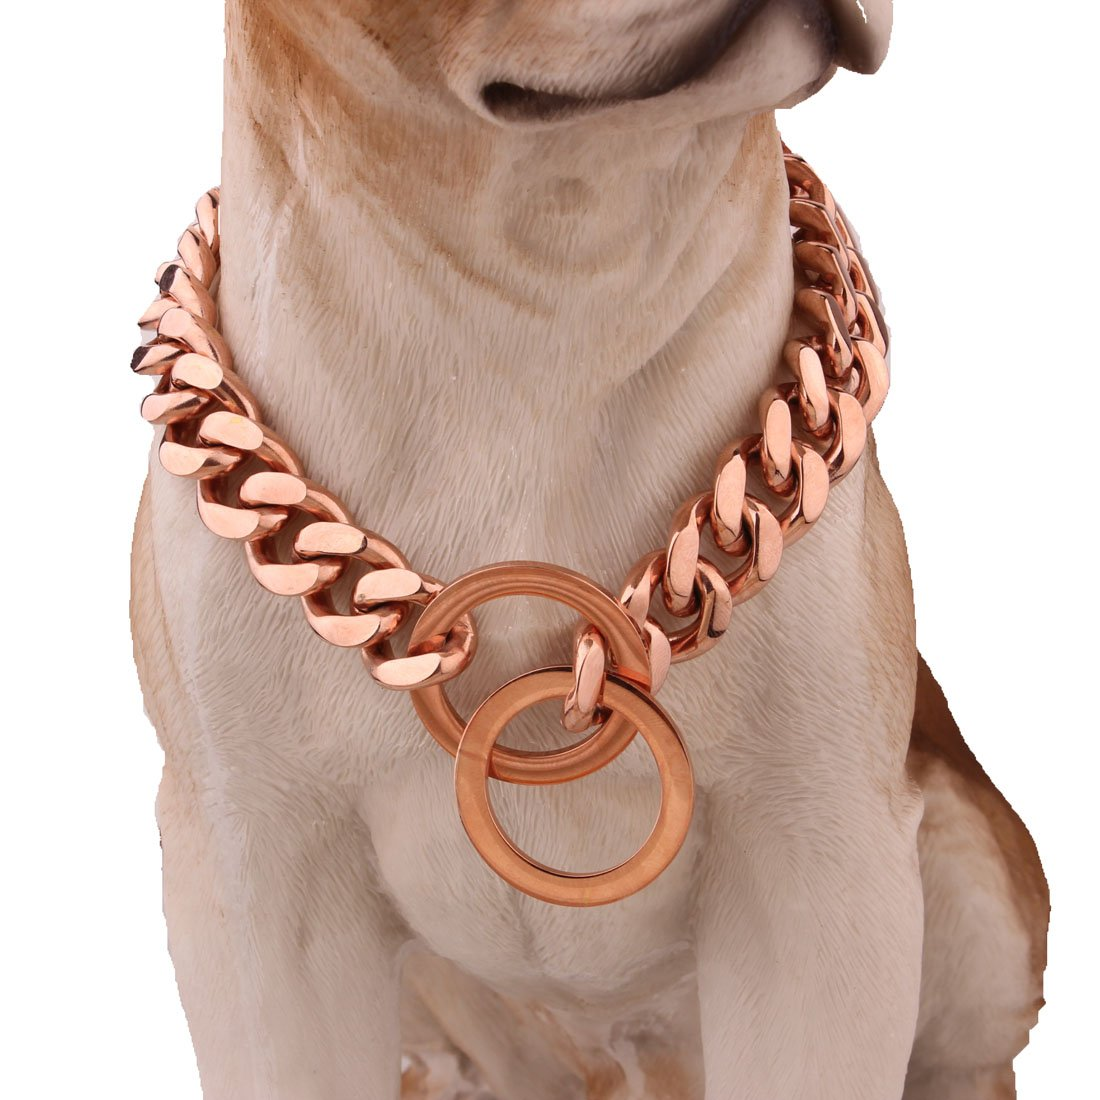 26inch Safe Dog Pet Martingale Pinch Metal Slip Choke 15mm pink gold Stainless Steel Curb Chain Collar for Training Large Dogs 12-32inches (26inch)